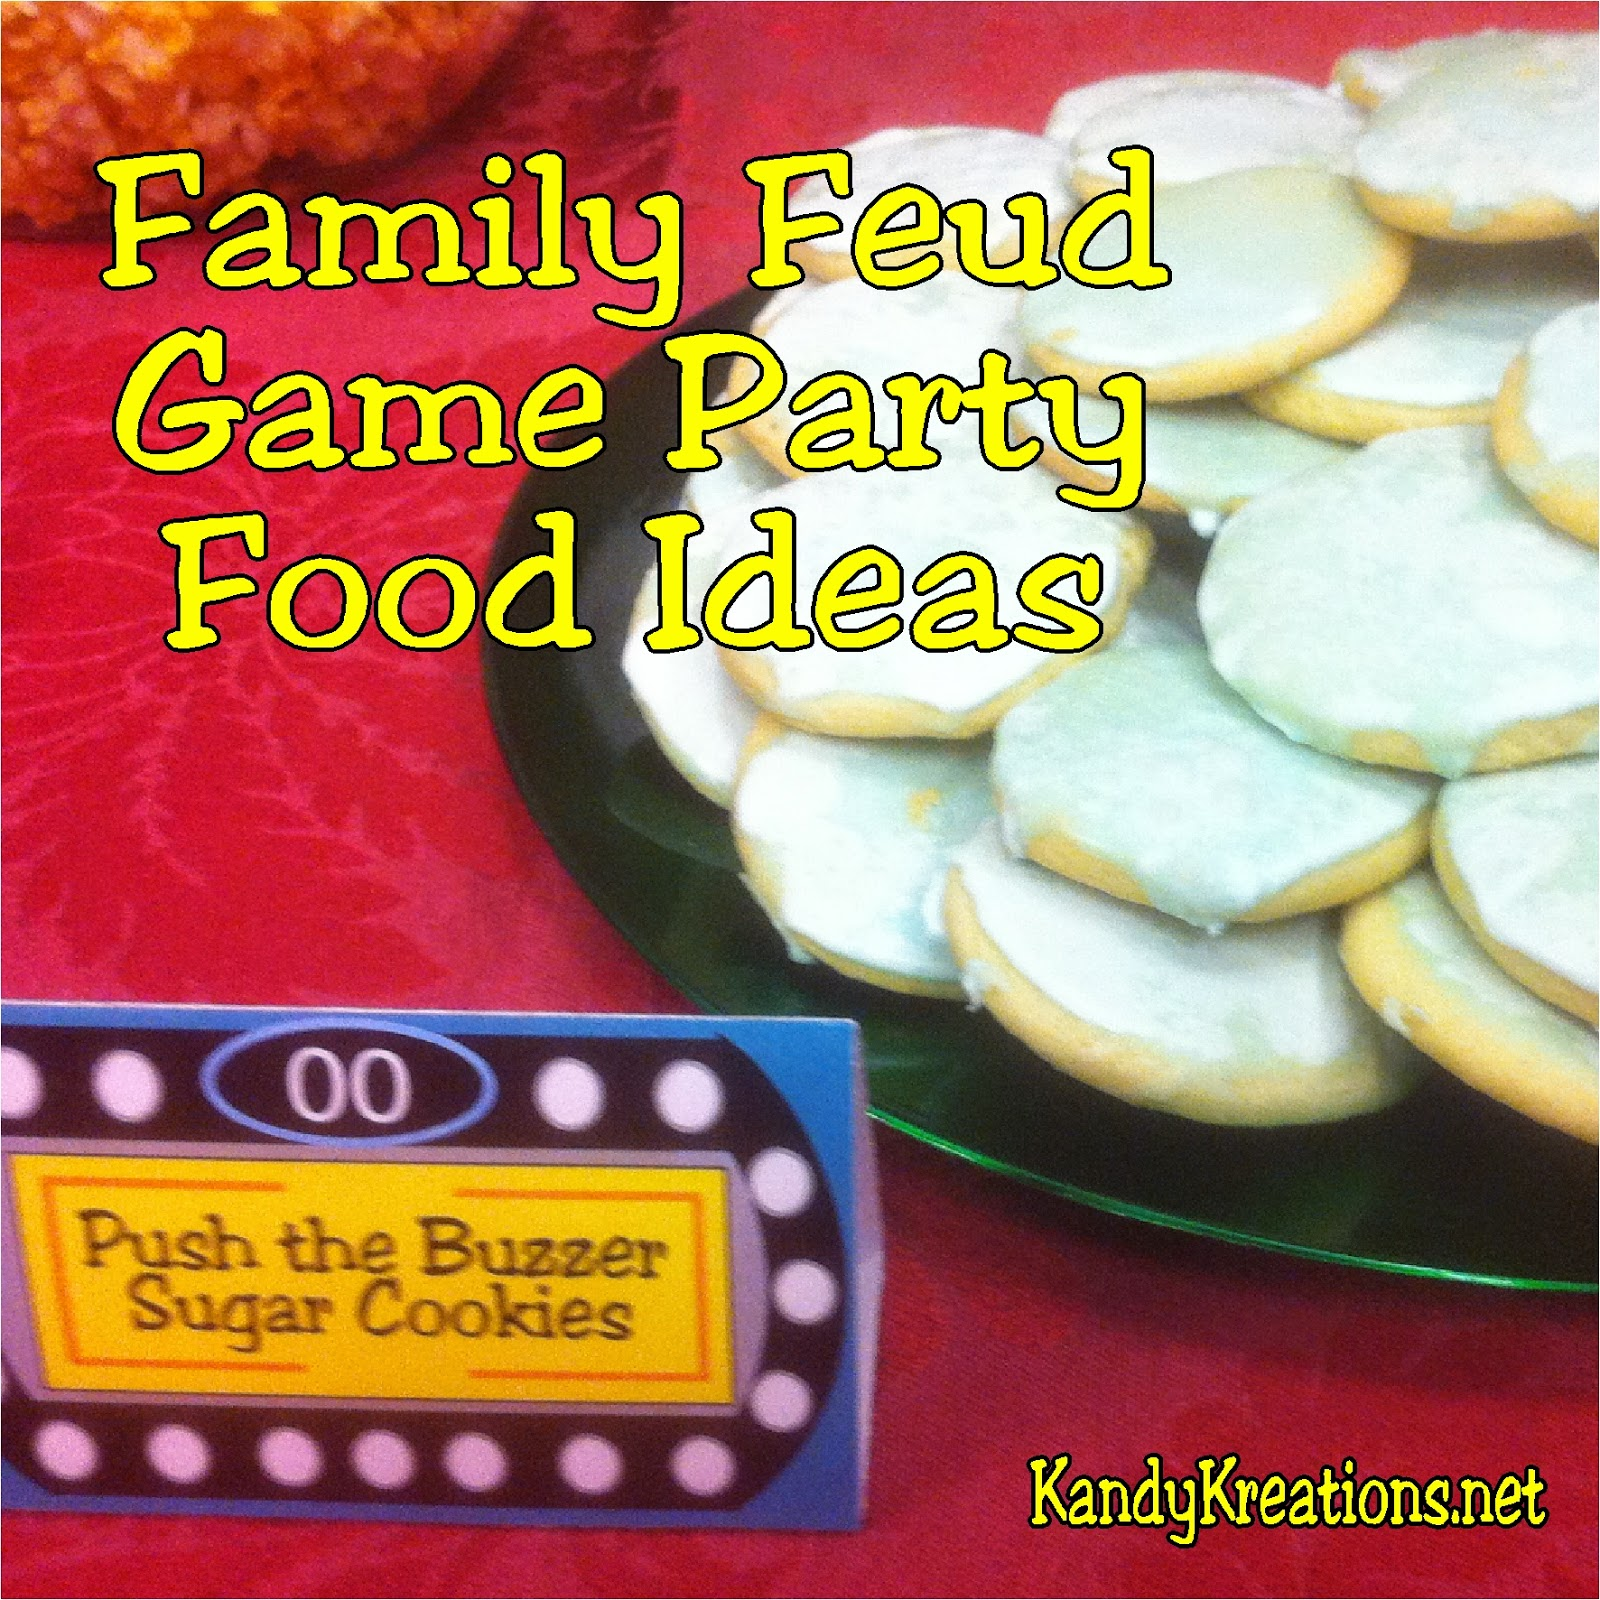 Make your next game party or family game night extra special with these fun party food ideas.  Turn regular desserts and treats into spectacular additions to your game night with the addition of yummy recipes, fun party food names, and free themed Family Feud game printables.